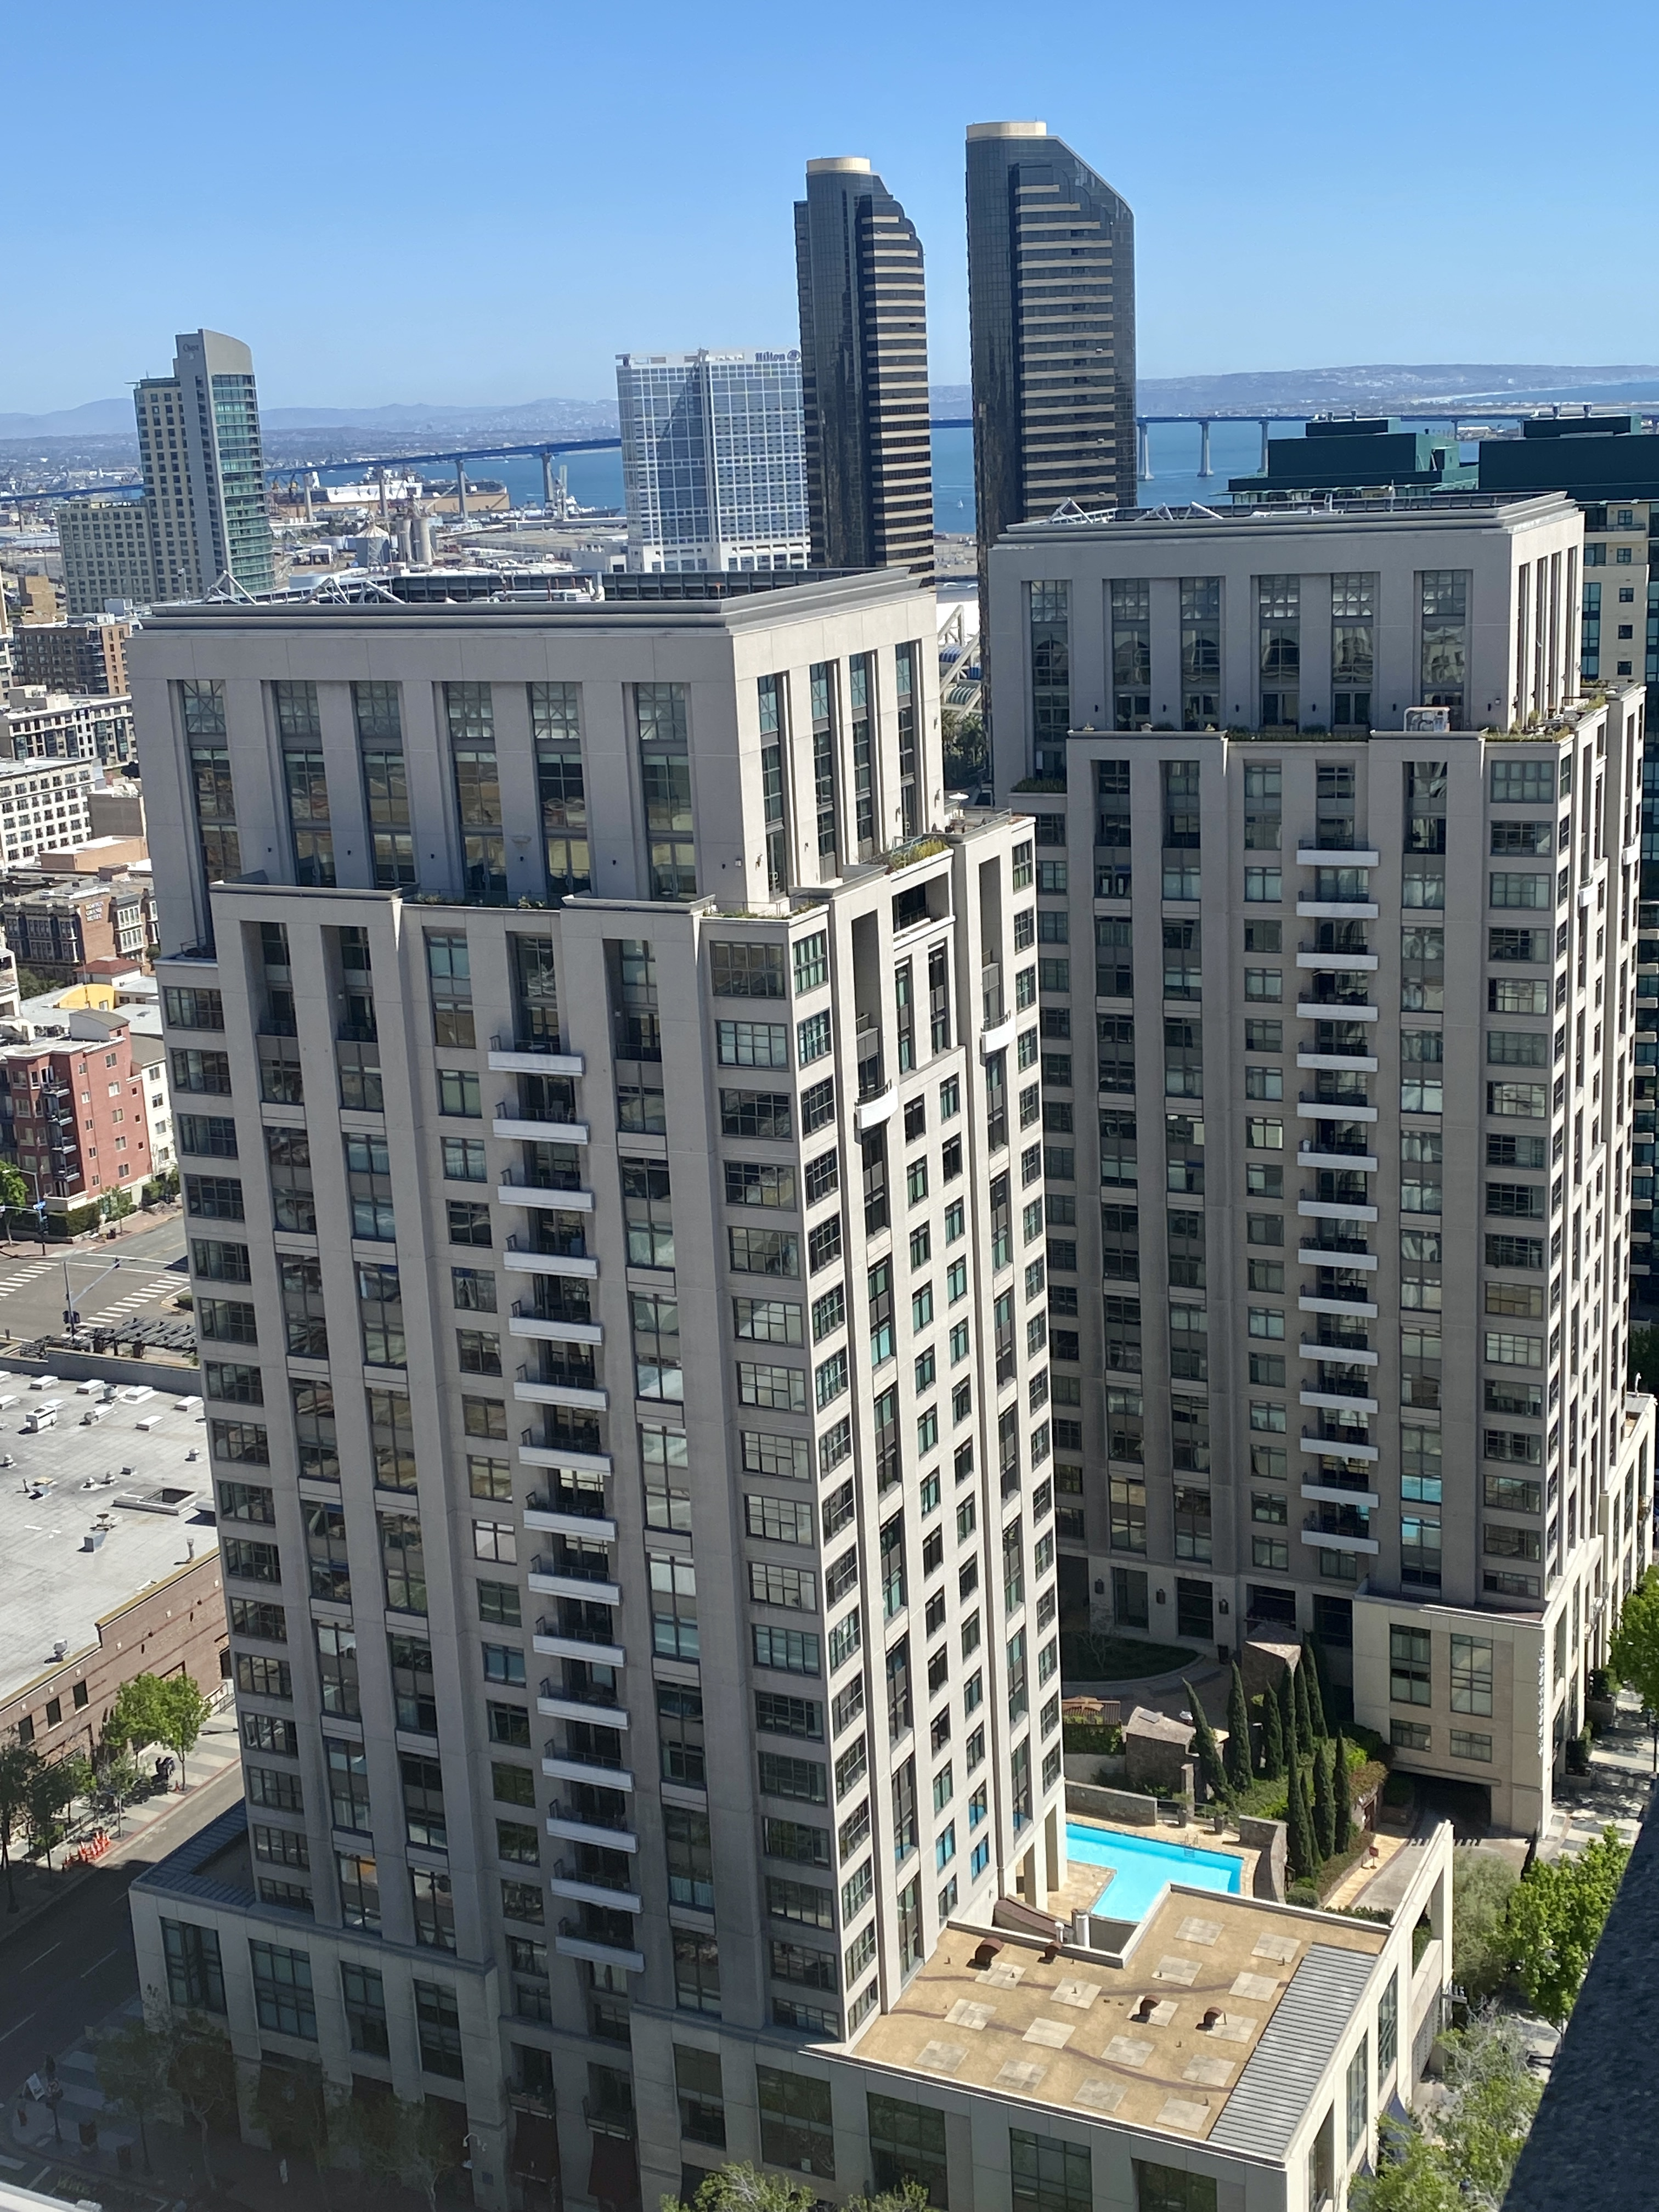 renaissance condos picture of outside of building san diego